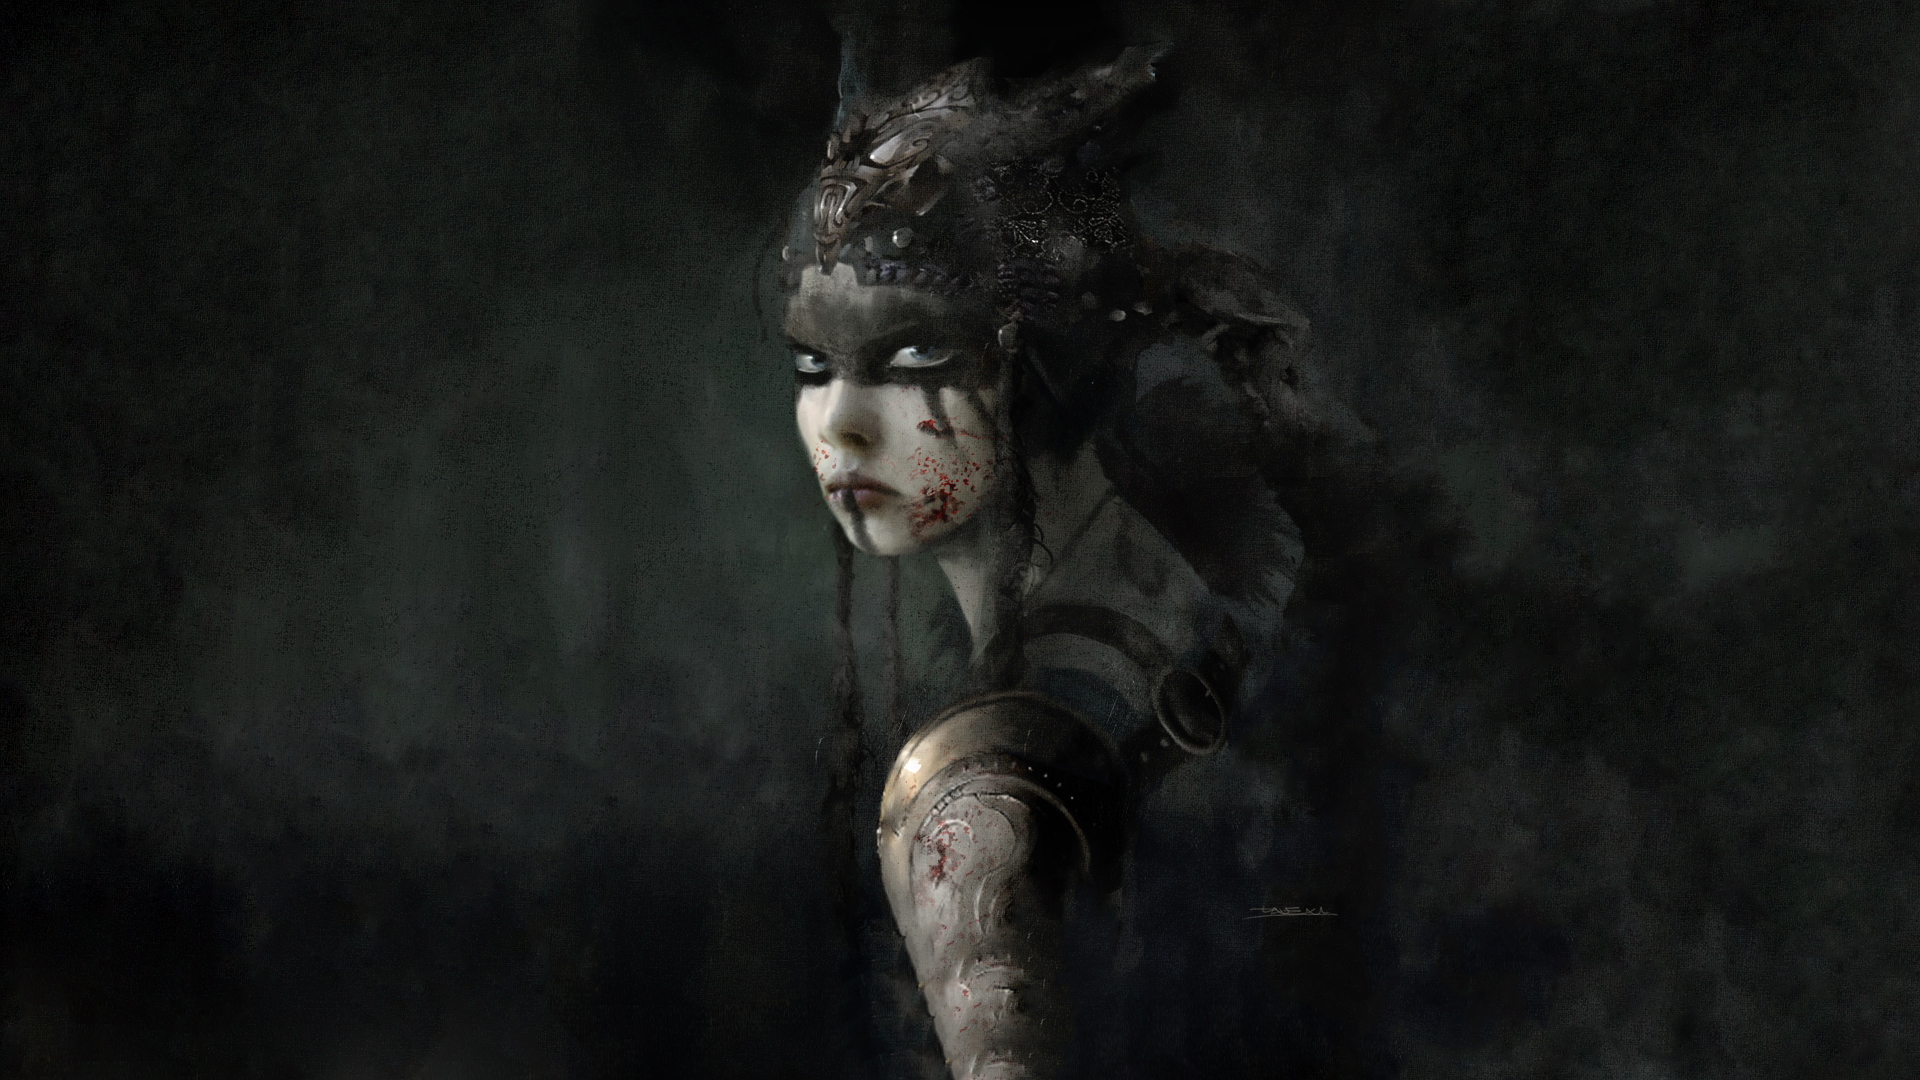 Hellblade Senuas Sacrifice Full HD Wallpaper And Background